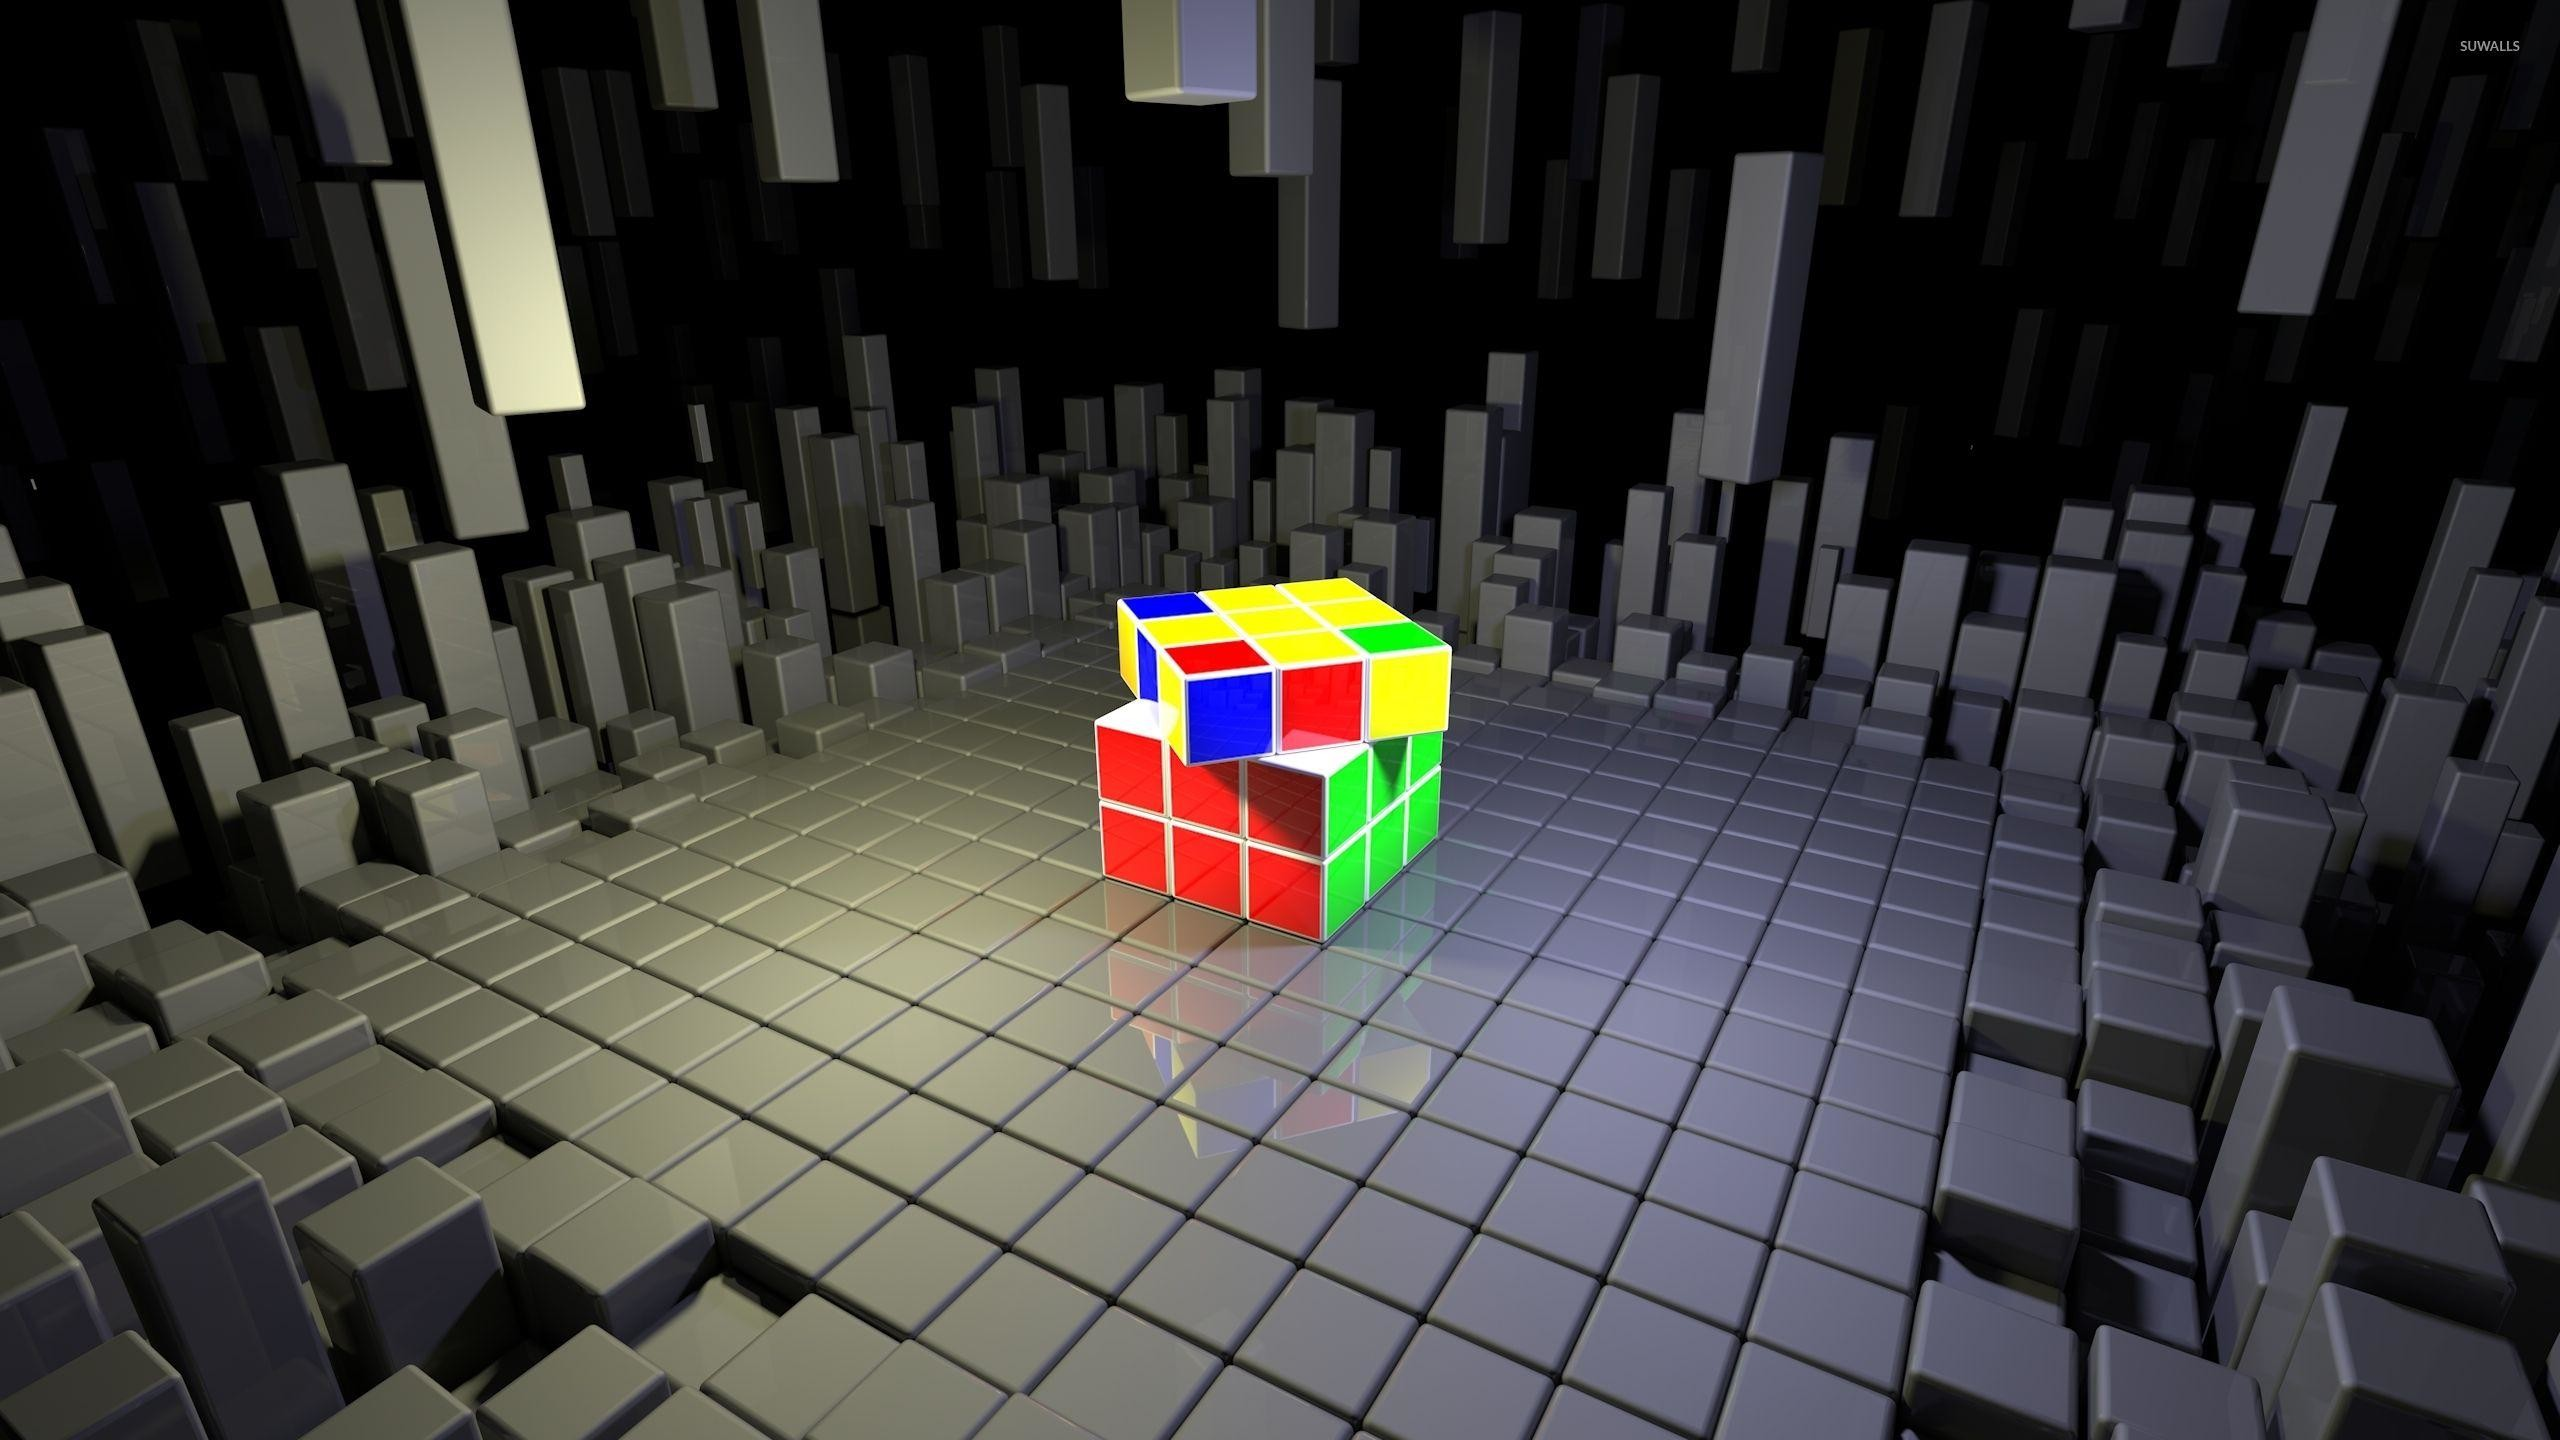 Rubik's Cube on top of gray cubes wallpaper – 3D wallpapers – #50972